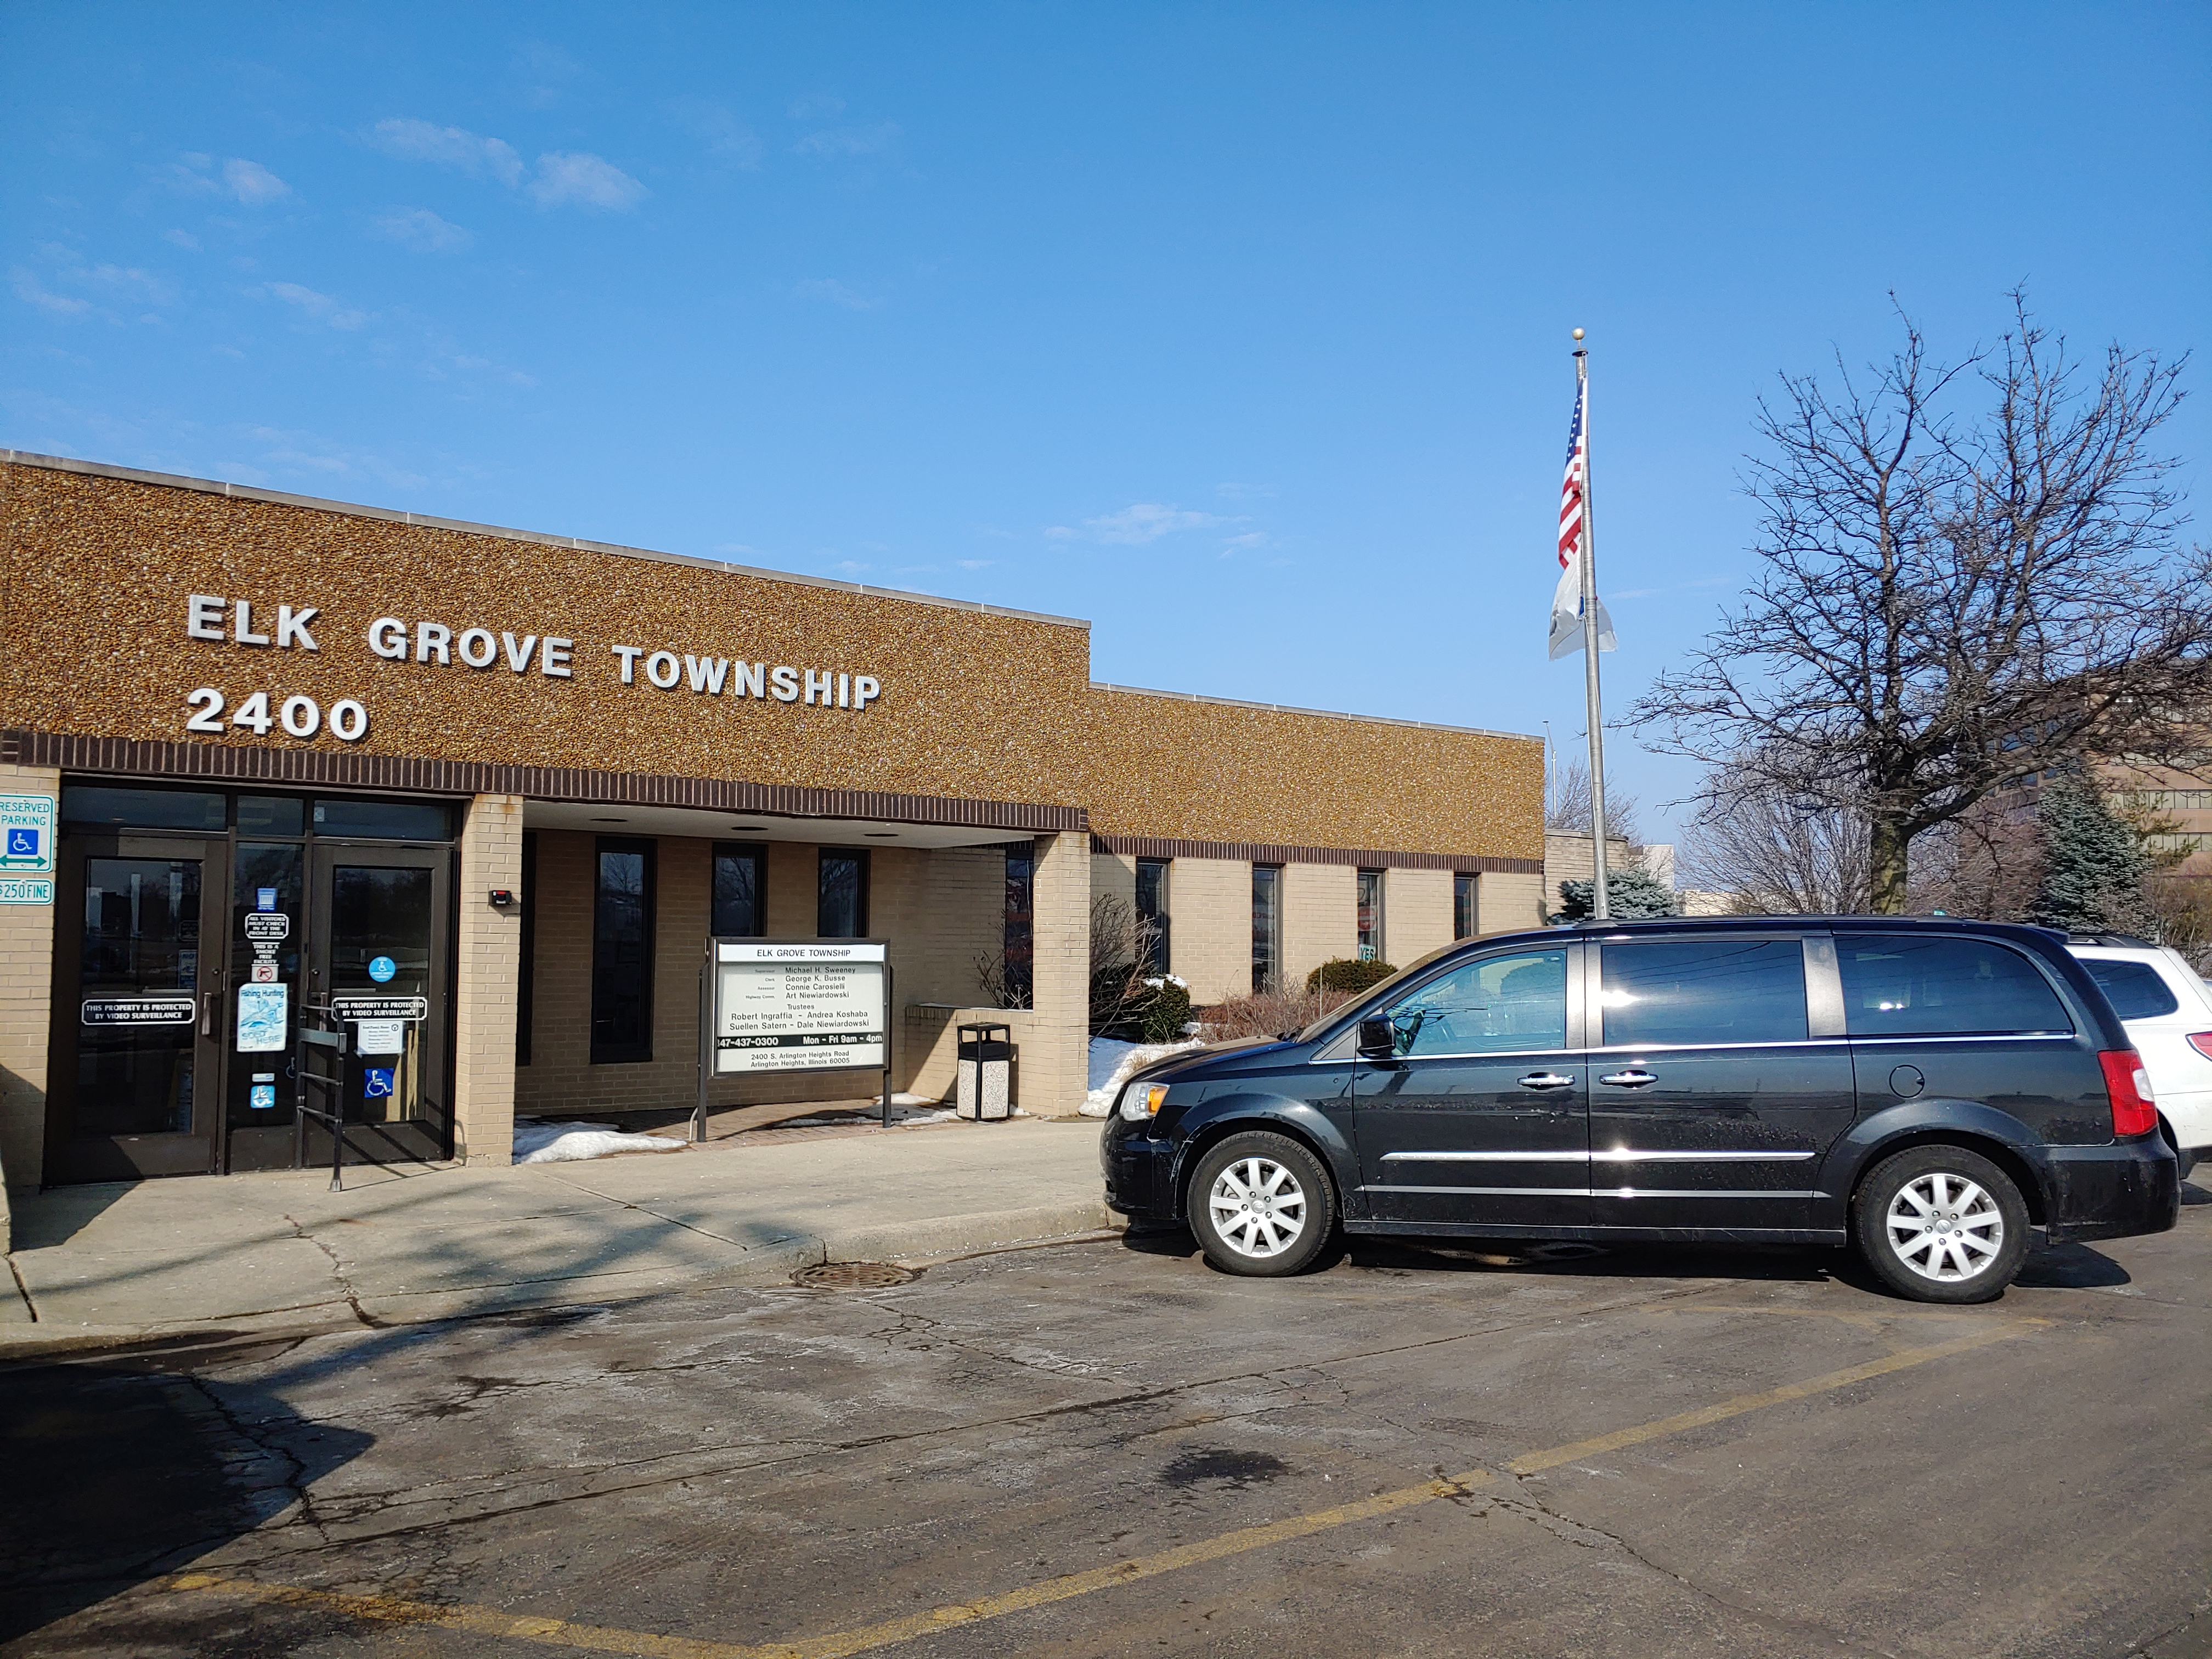 Elk Grove Township Provides Social Services and So Much More – Elk